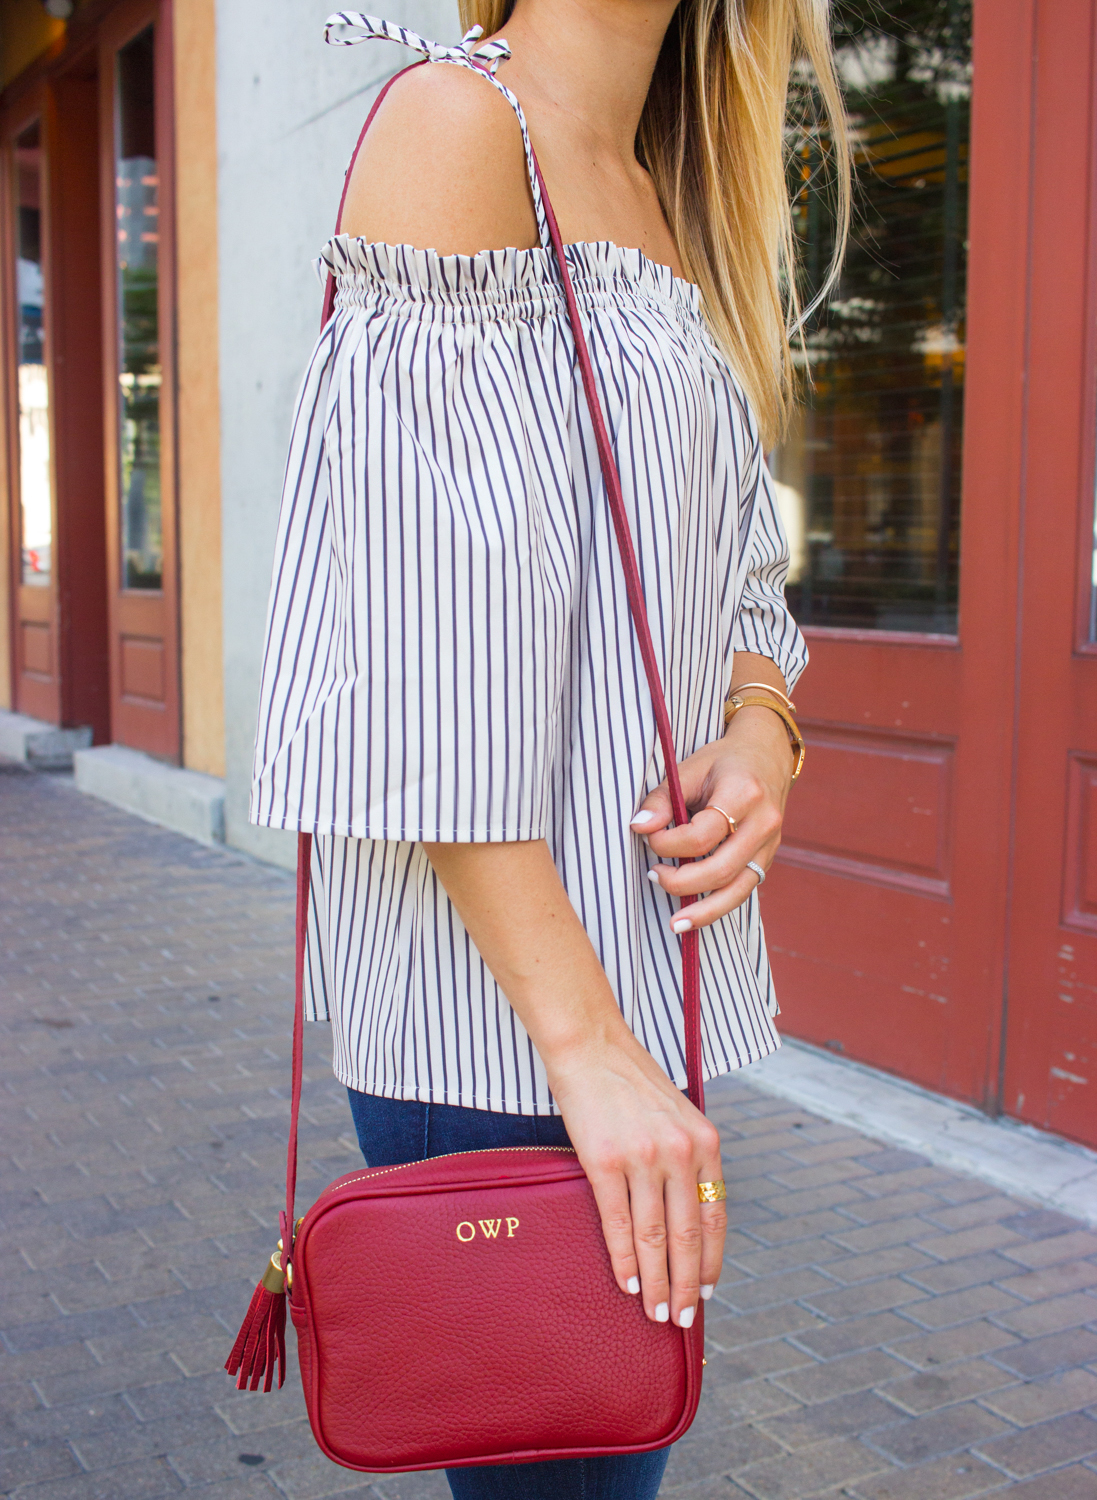 livvyland-blog-goodnight-macaroon-cold-shoulder-striped-top-austin-second-street-district-red-monogram-handbag-dl-1961-emma-jeans-12